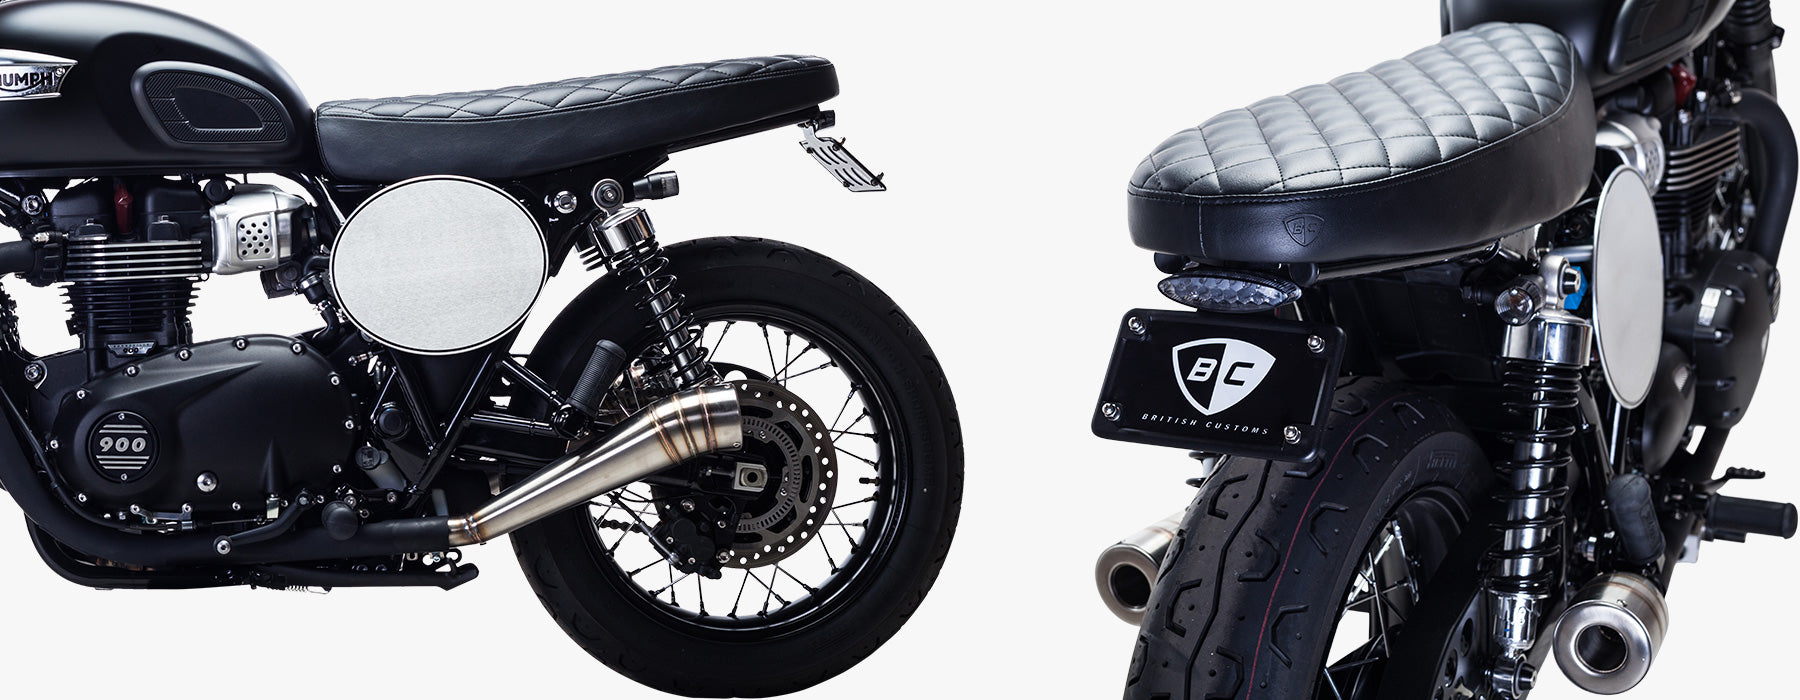 British Customs Cateye Fender Eliminator Kit on Bonneville T100 Liquid Cooled